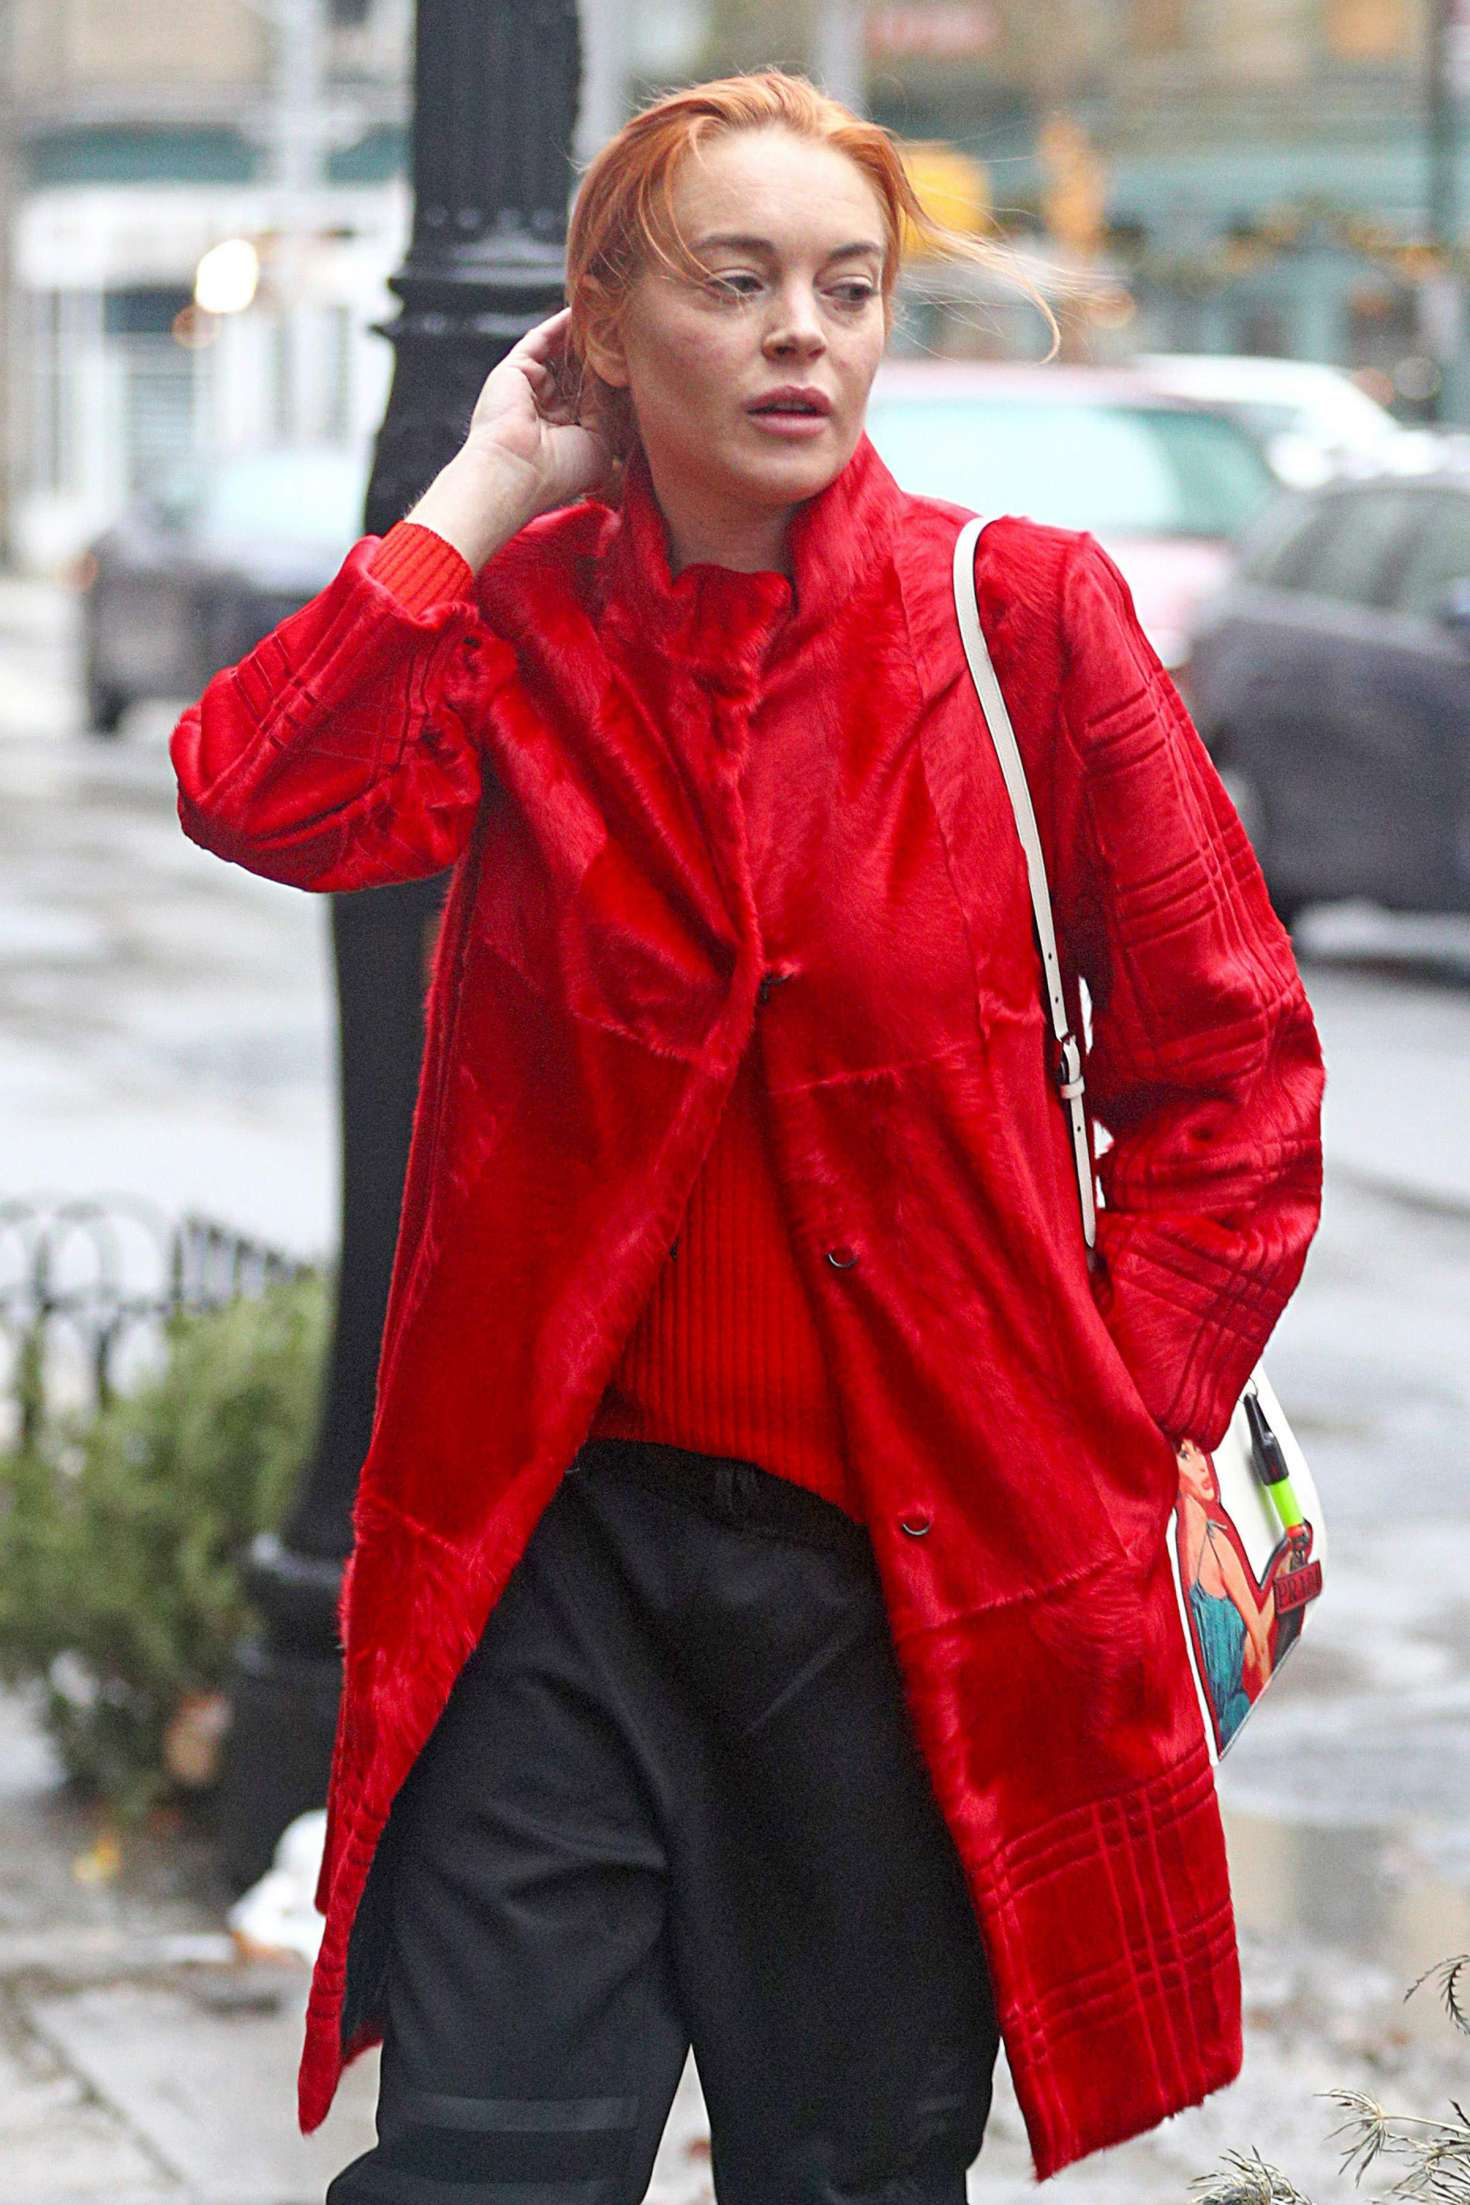 Lindsay Lohan in Red Coat - Out and about in NYC